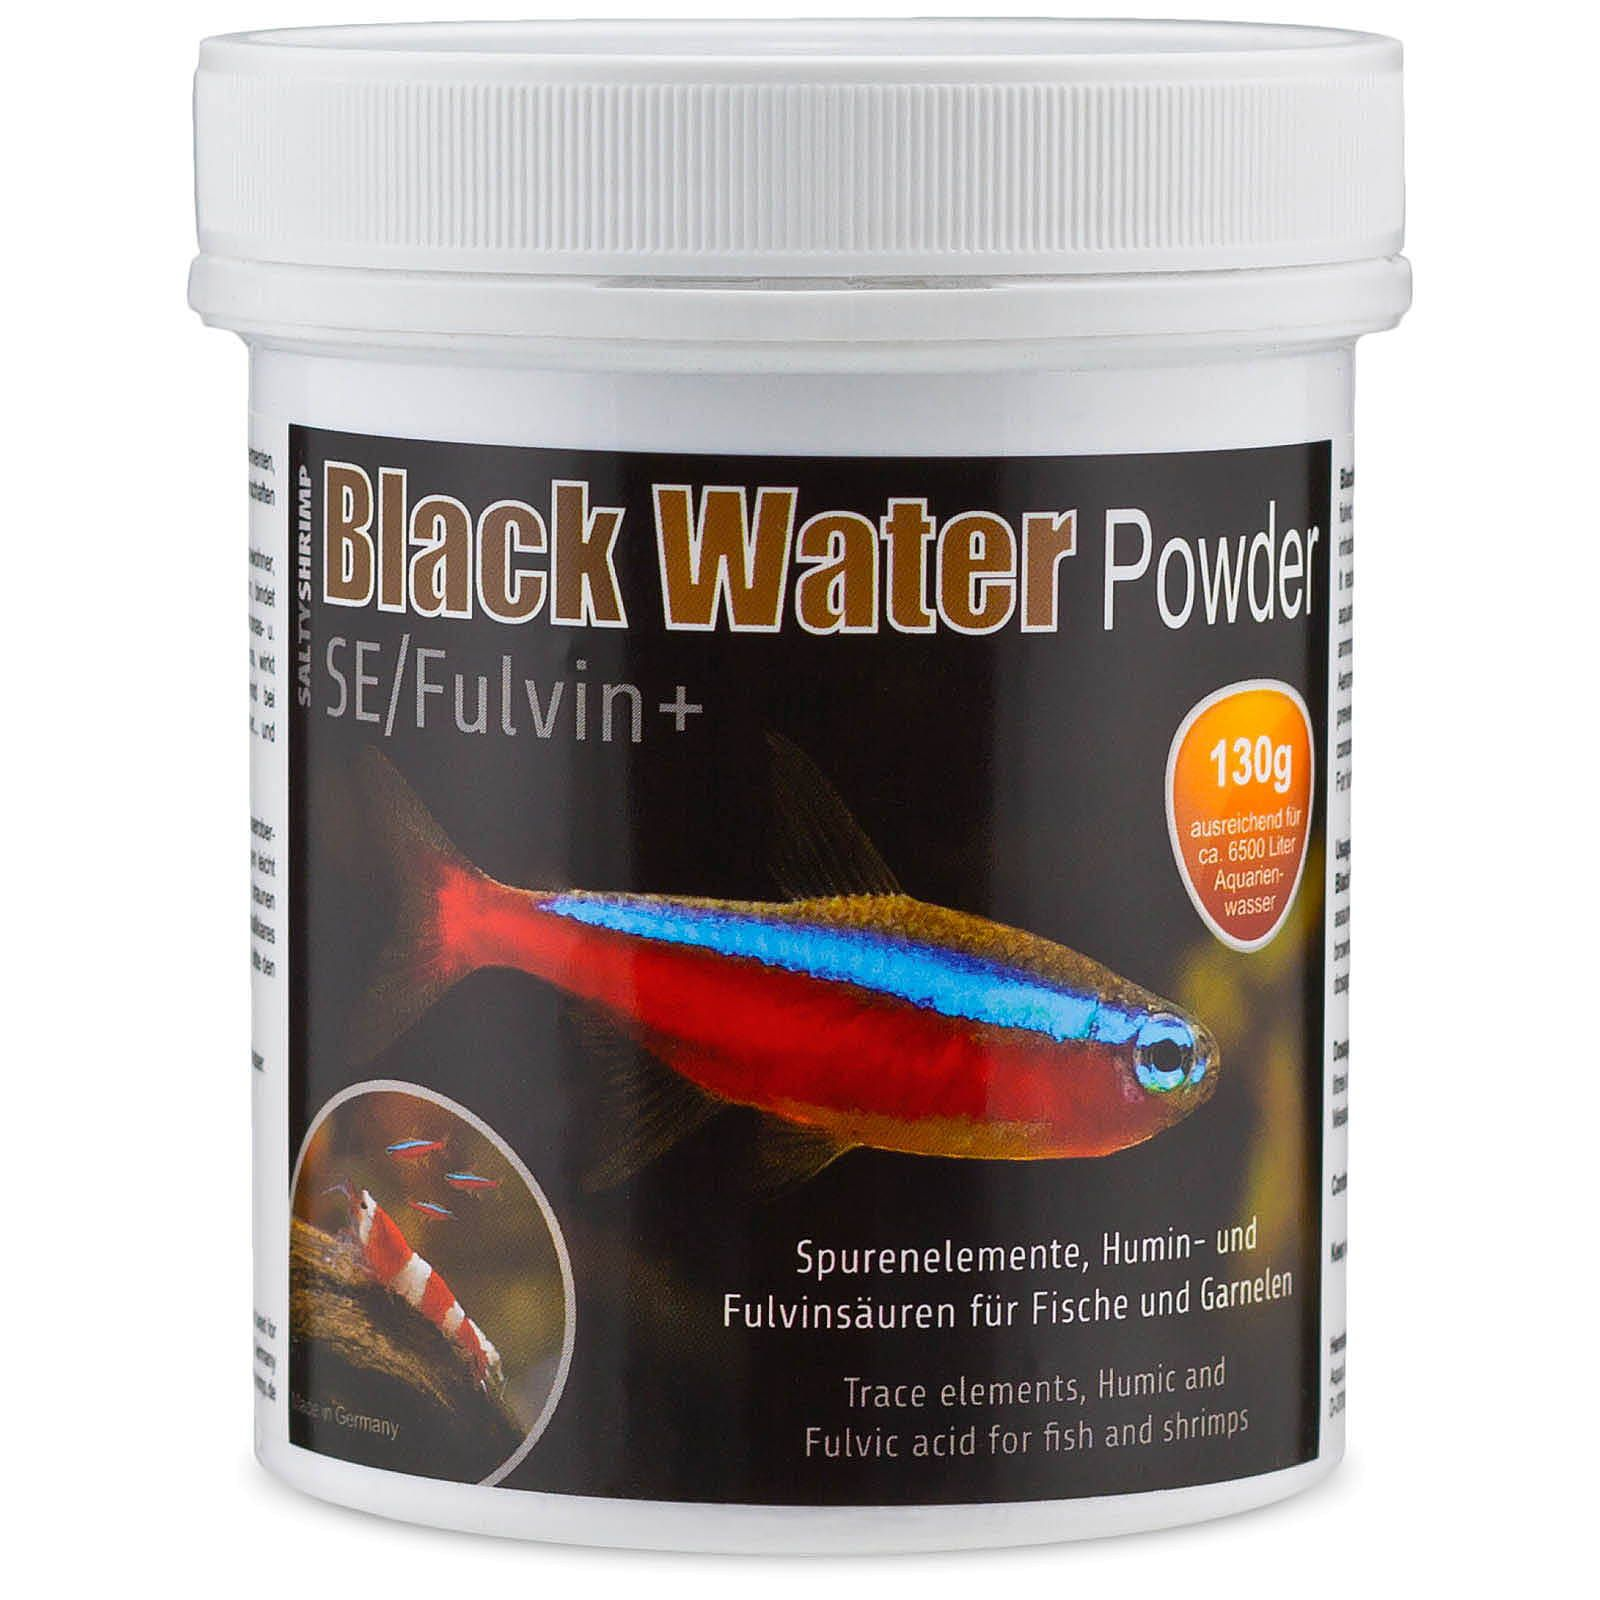 SaltyShrimp - Black Water Powder SE/Fulvin+ - 130 g